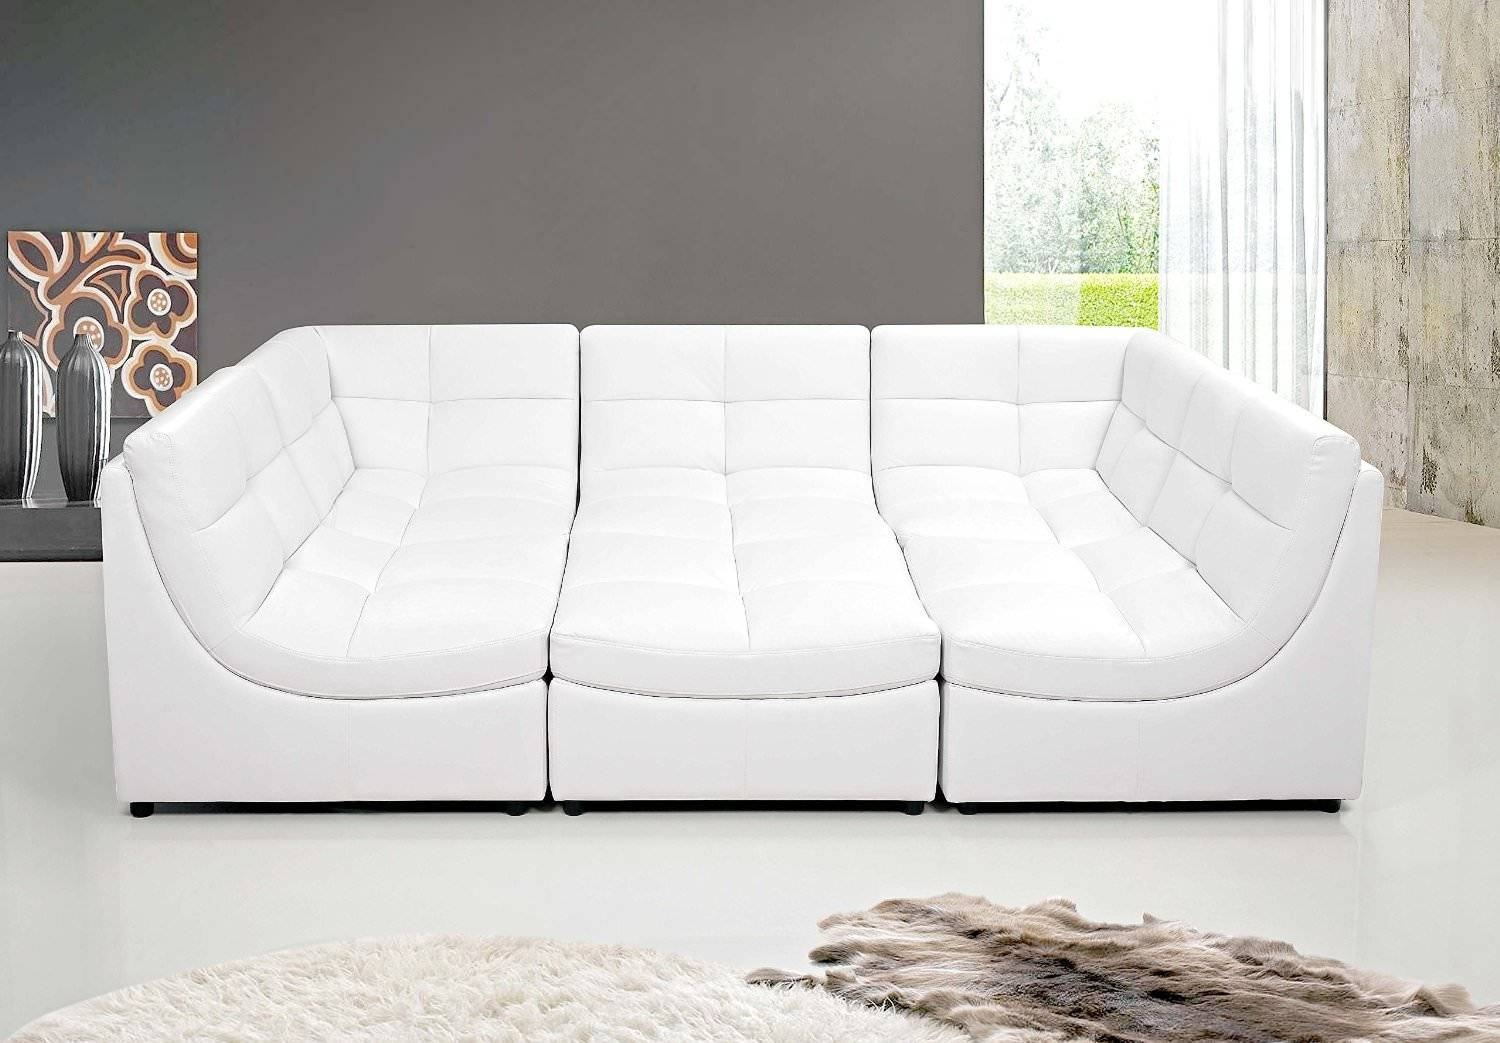 20+ Modular Sectional Sofas Designs, Ideas, Plans, Model | Design with Cloud Sectional Sofas (Image 1 of 15)